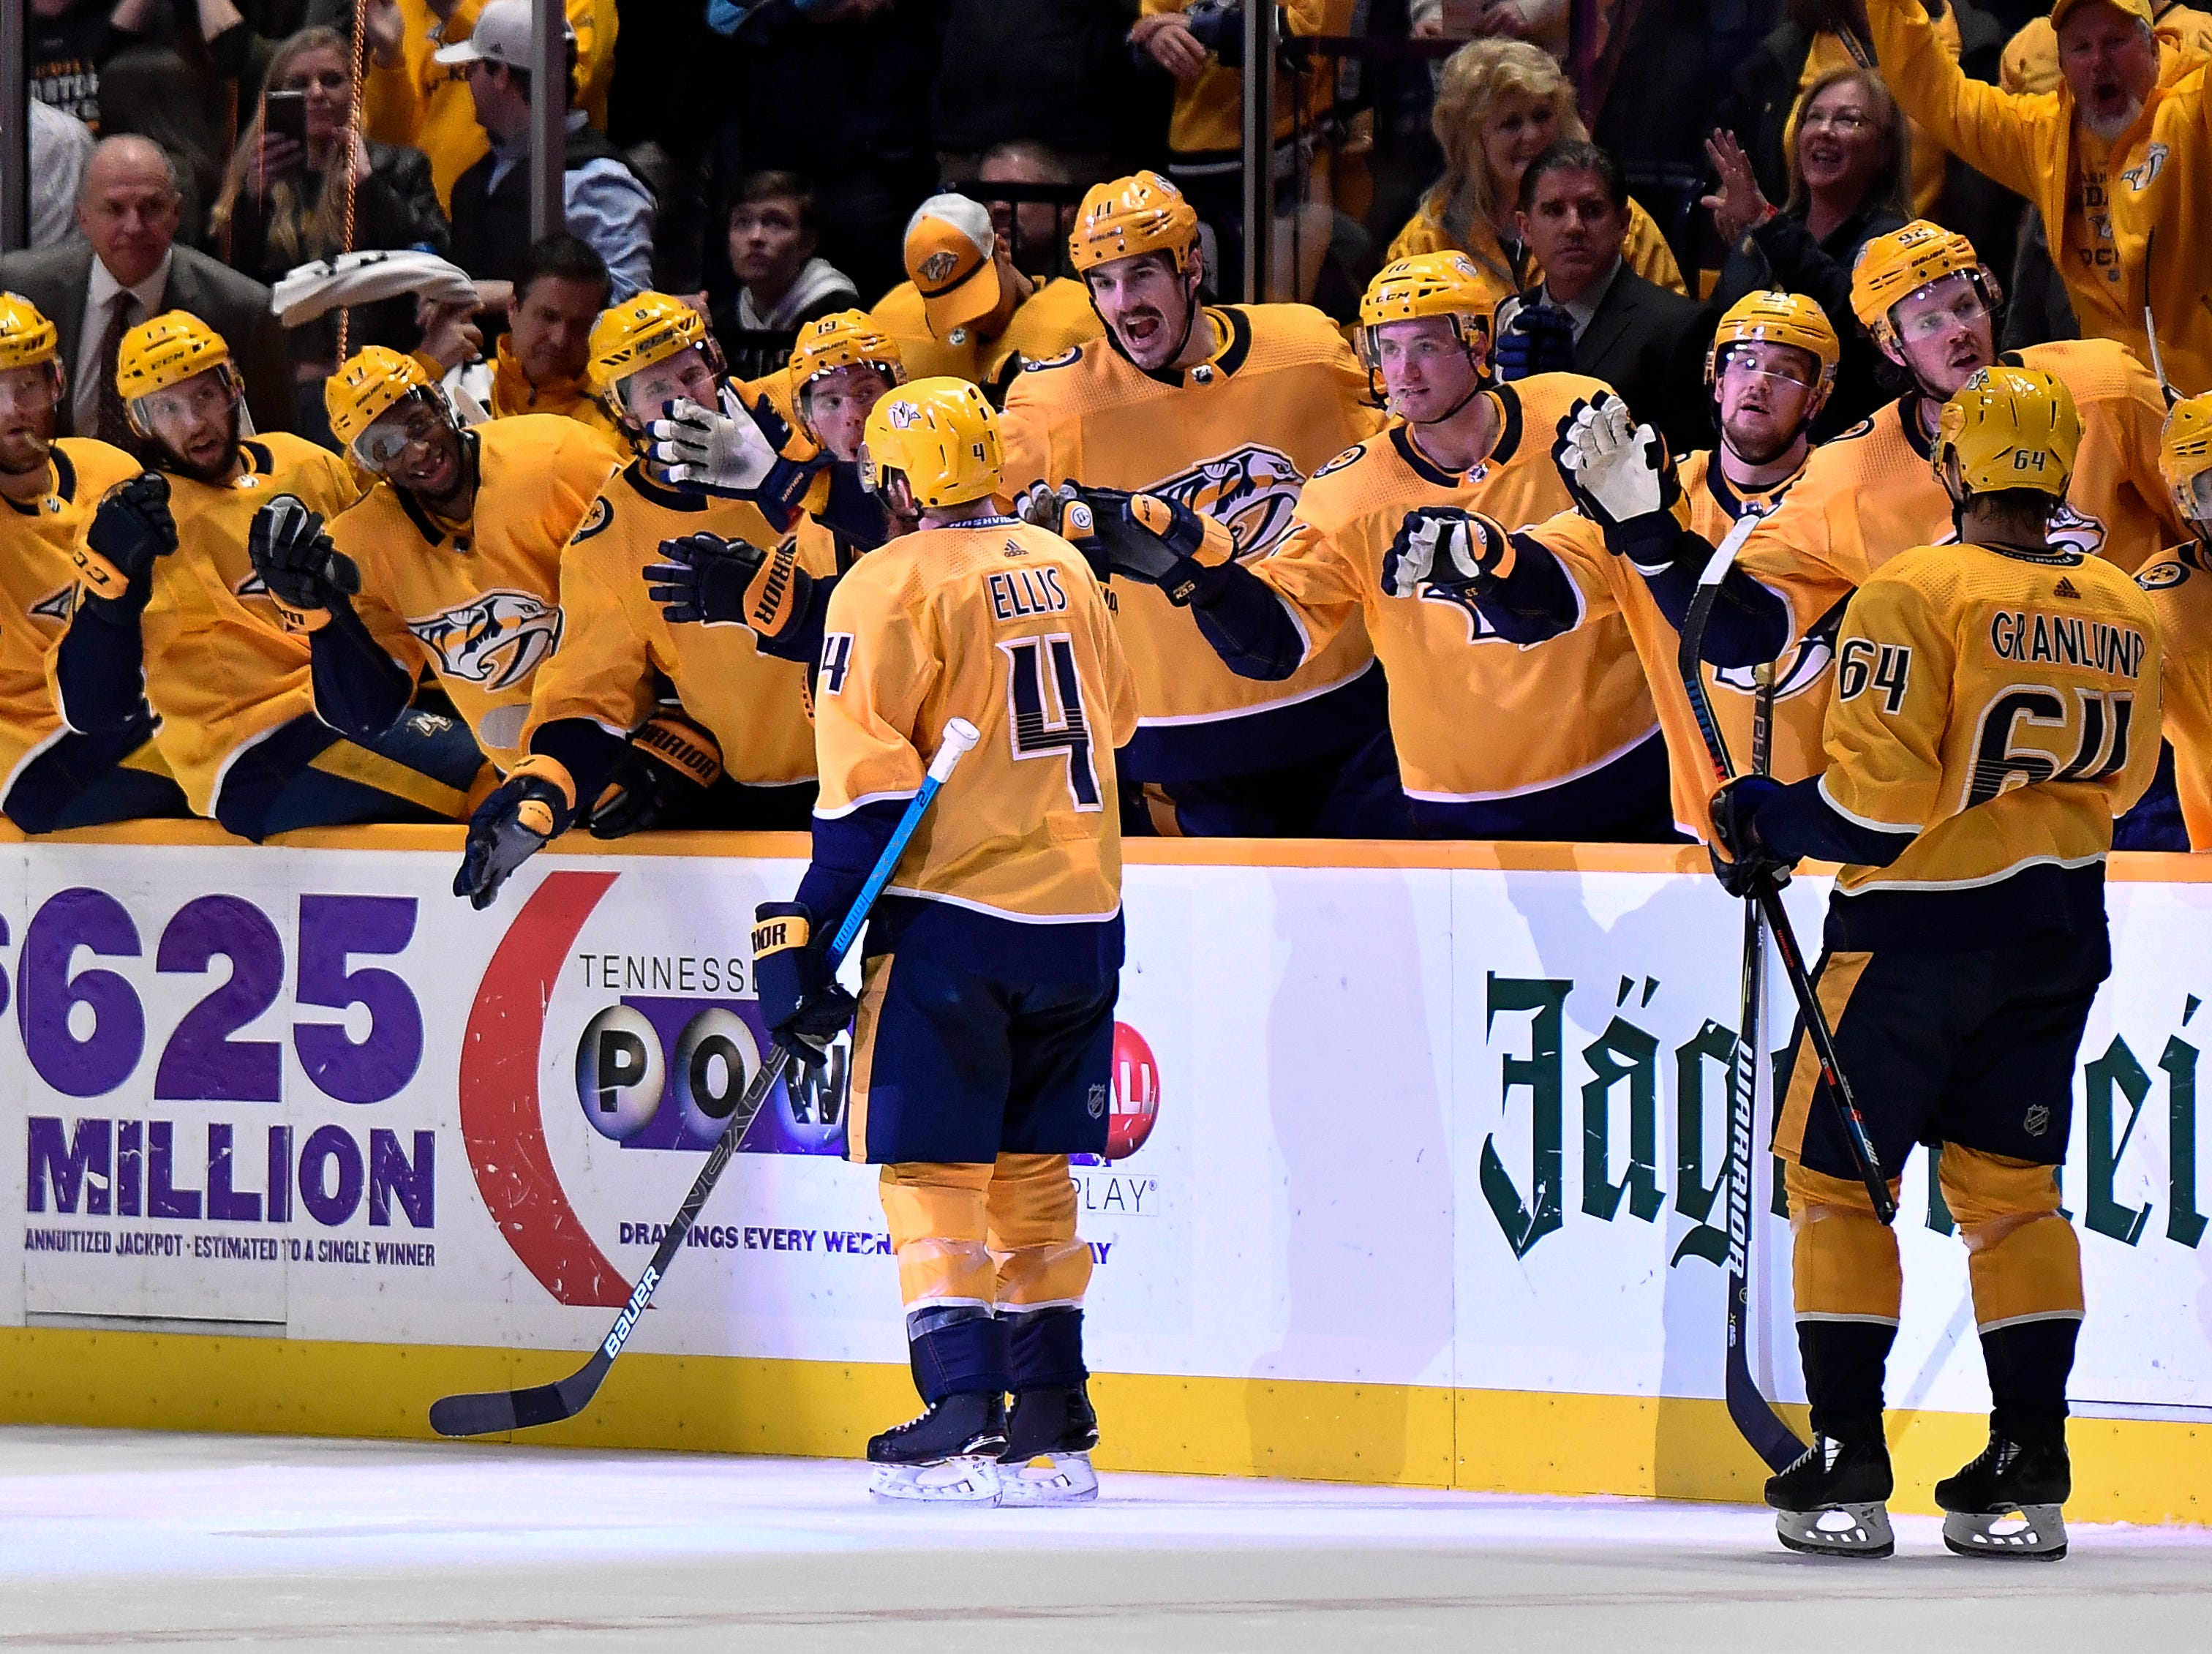 Predators defenseman Ryan Ellis (4) is congratulated after his goal against the Penguins during the third period to tie the game at Bridgestone Arena Thursday, March 21, 2019 in Nashville, Tenn.